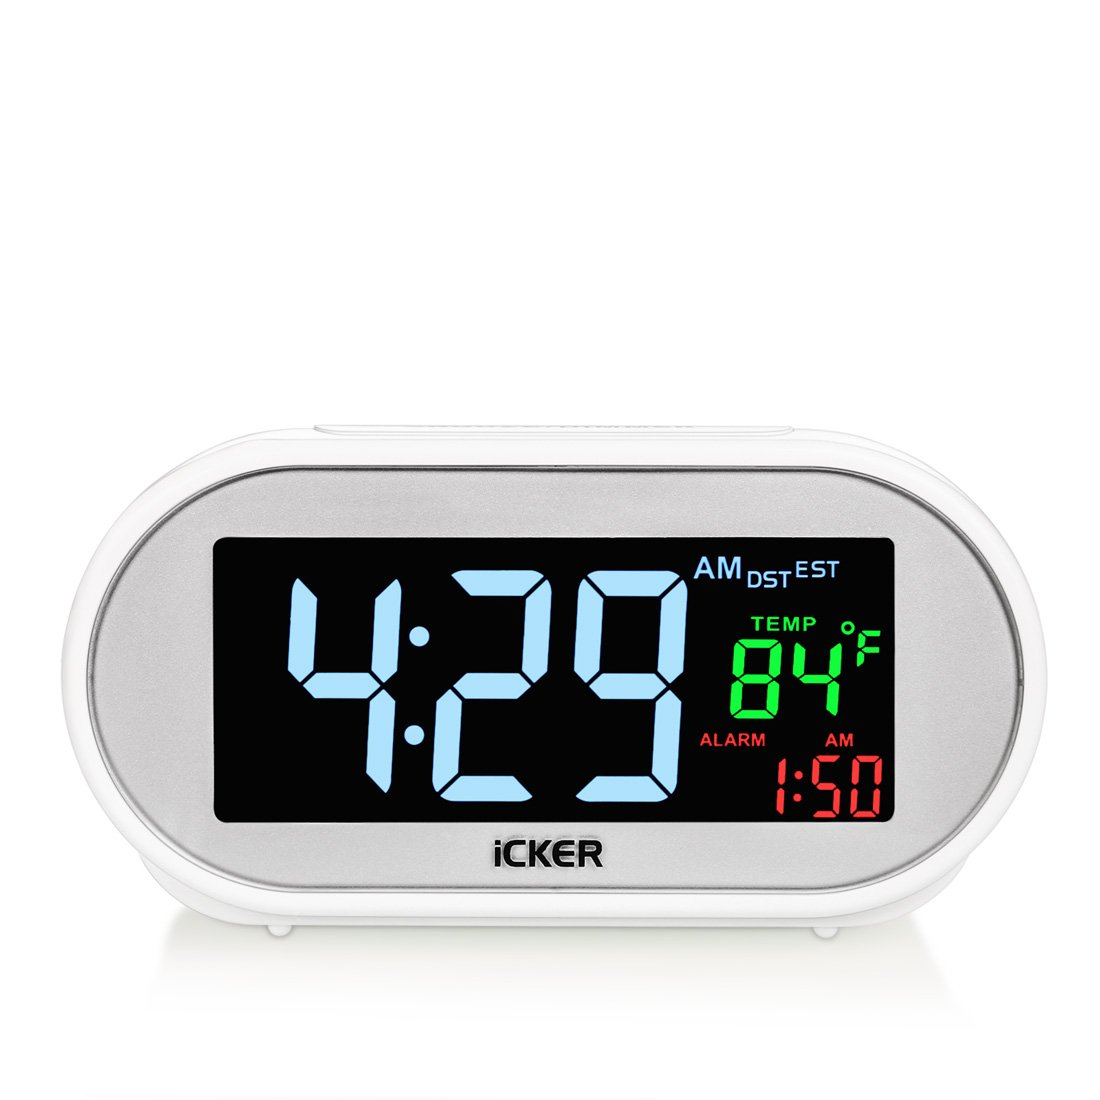 Digital Alarm Clock with USB Charger Port, Led Clock with Dimmer for Bedrooms, Four Time Zone, Auto DST, Indoor Temperature, Battery Backup by BALDMA